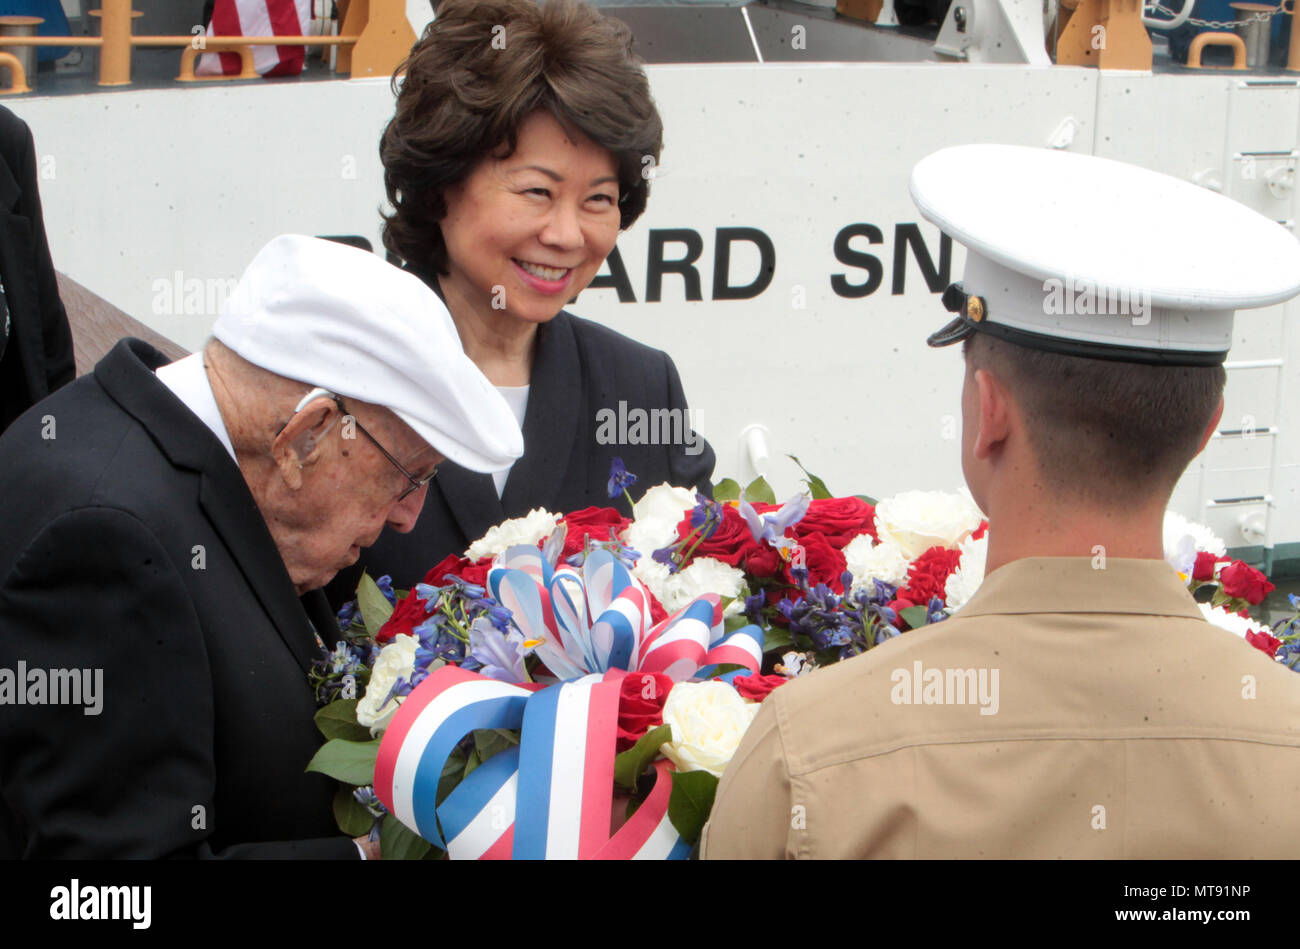 New York, NY, USA. 28th May, 2018. Elaine Lan Chao, United States Secretary of Transportation lays a weave to commemorate Memorial Day during the 2018 Memorial Day Ceremony held aboard the U.S.S Intrepid Sea, Air, Space Museum Complex on May 28, 2018 in New York City. Credit: Mpi43/Media Punch/Alamy Live News - Stock Image